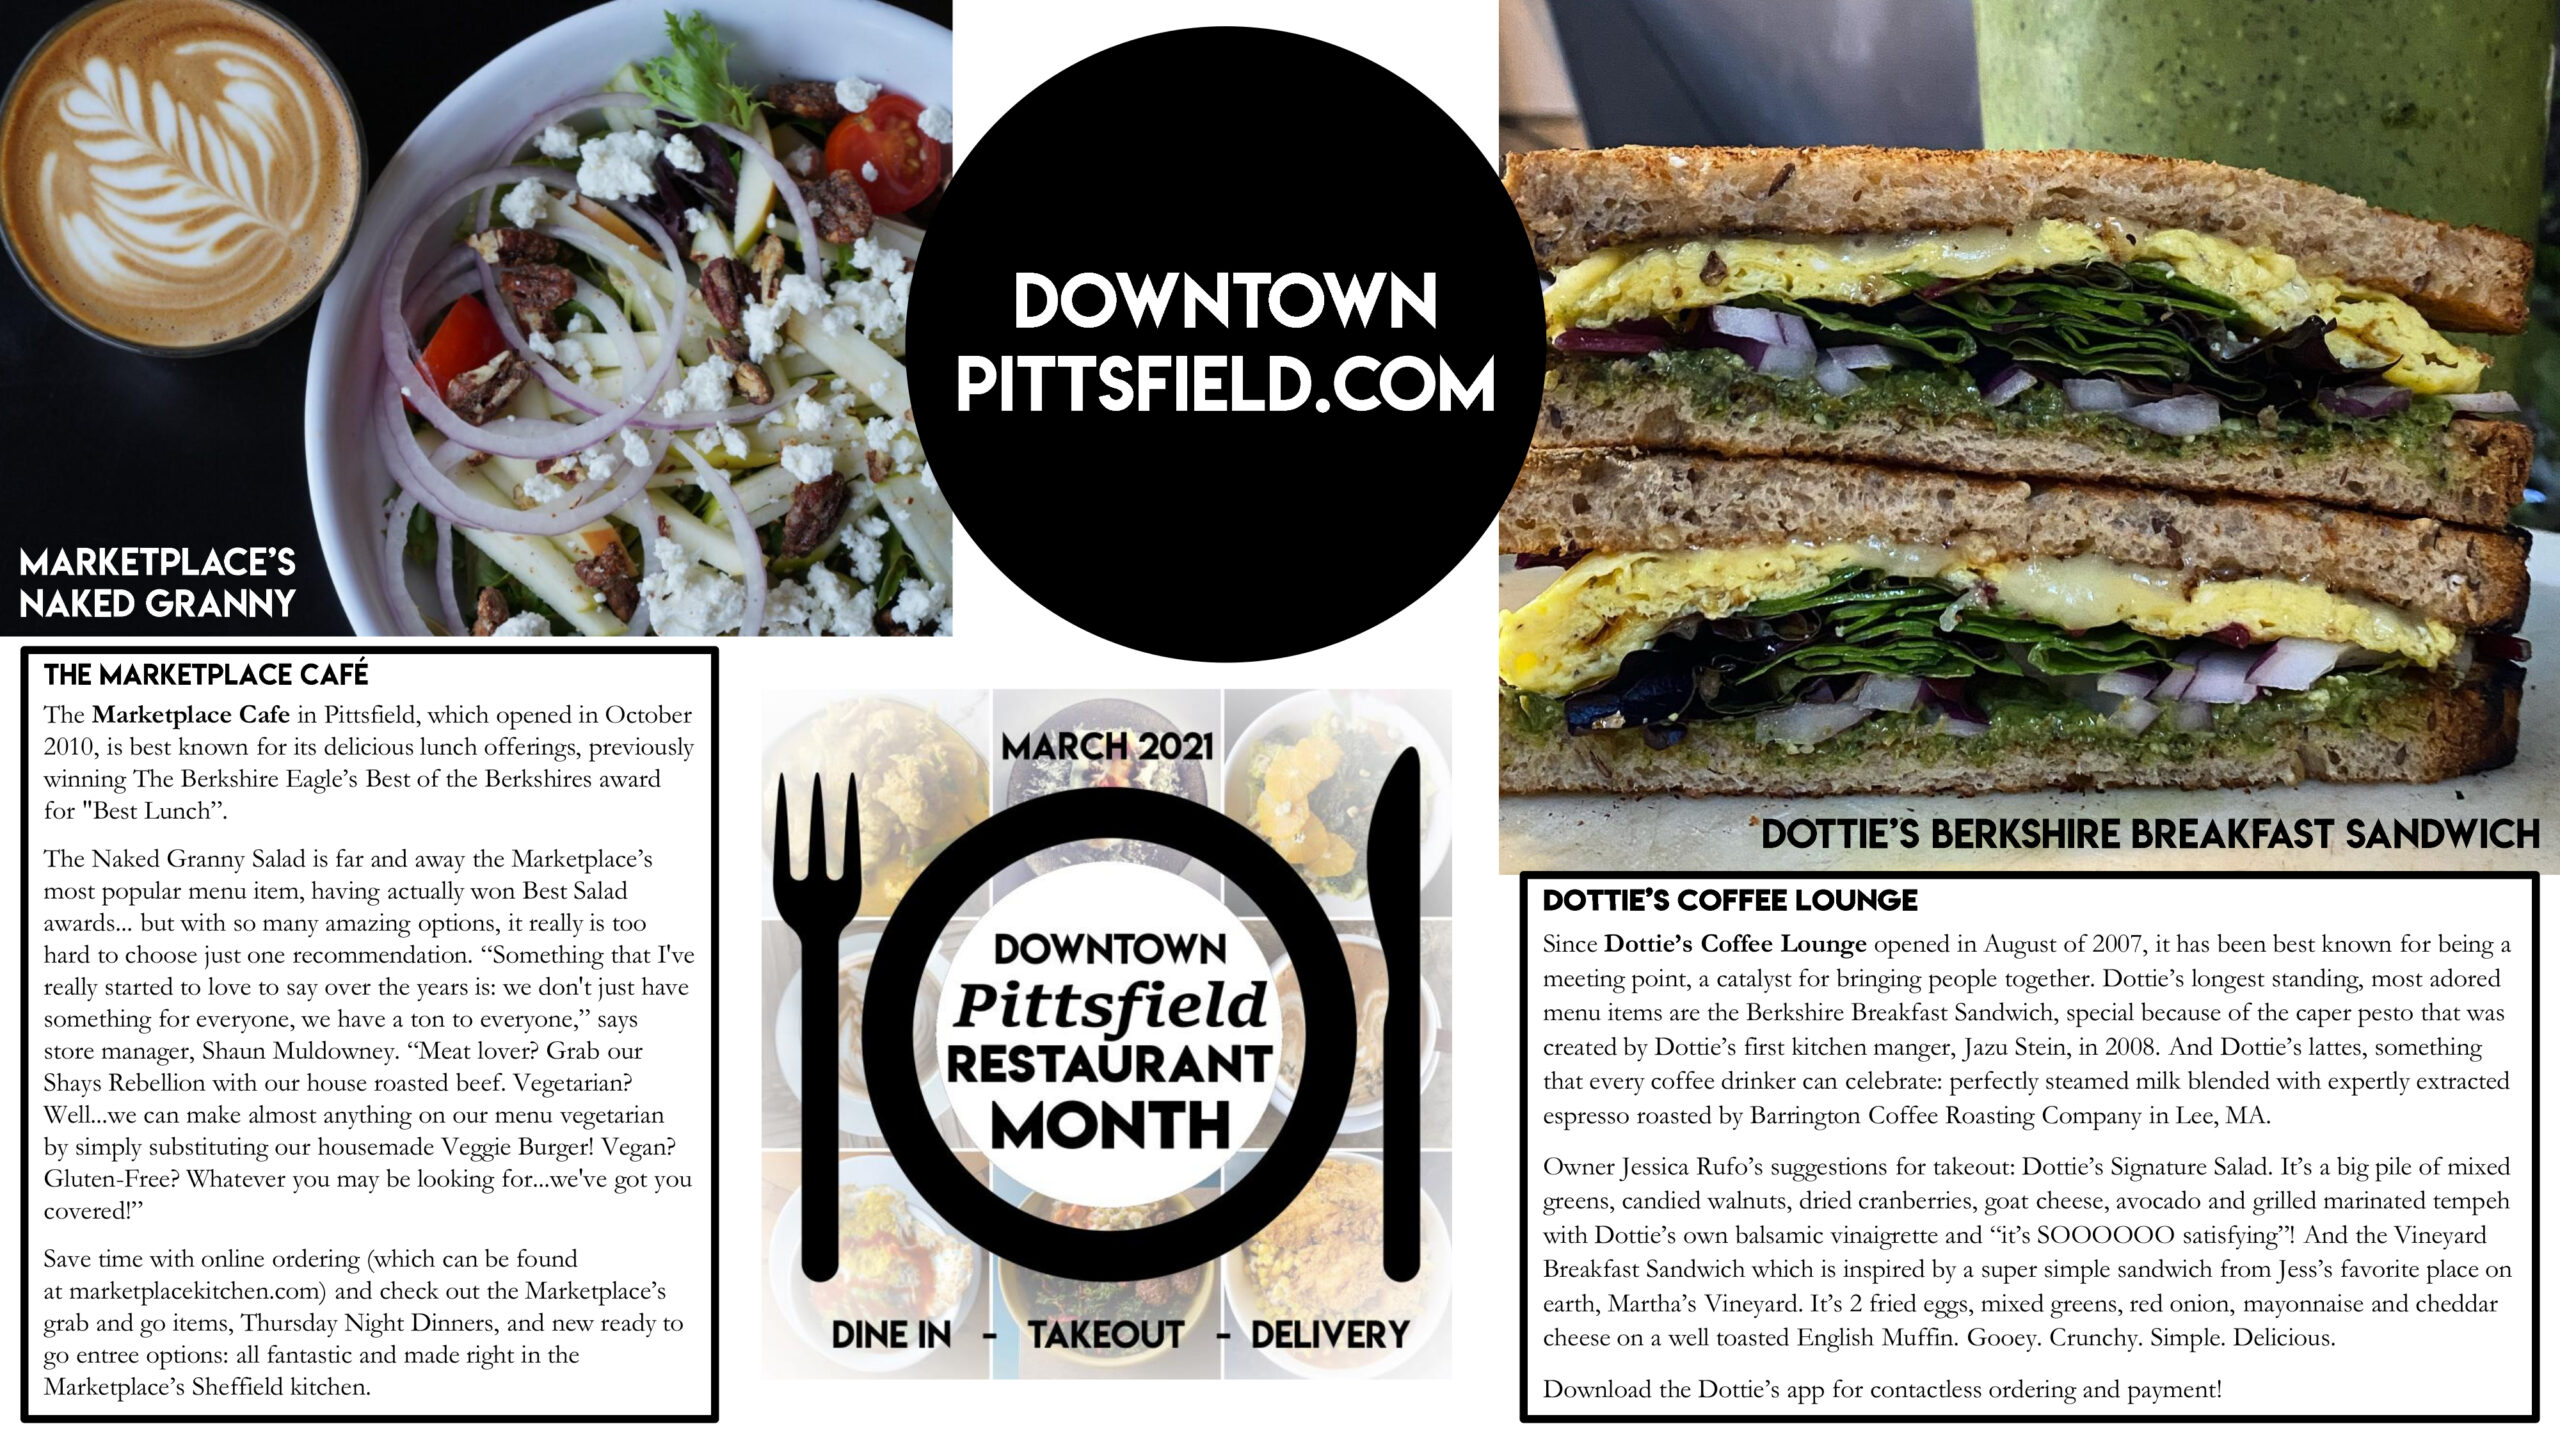 Downtown Pittsfield Restaurant Month